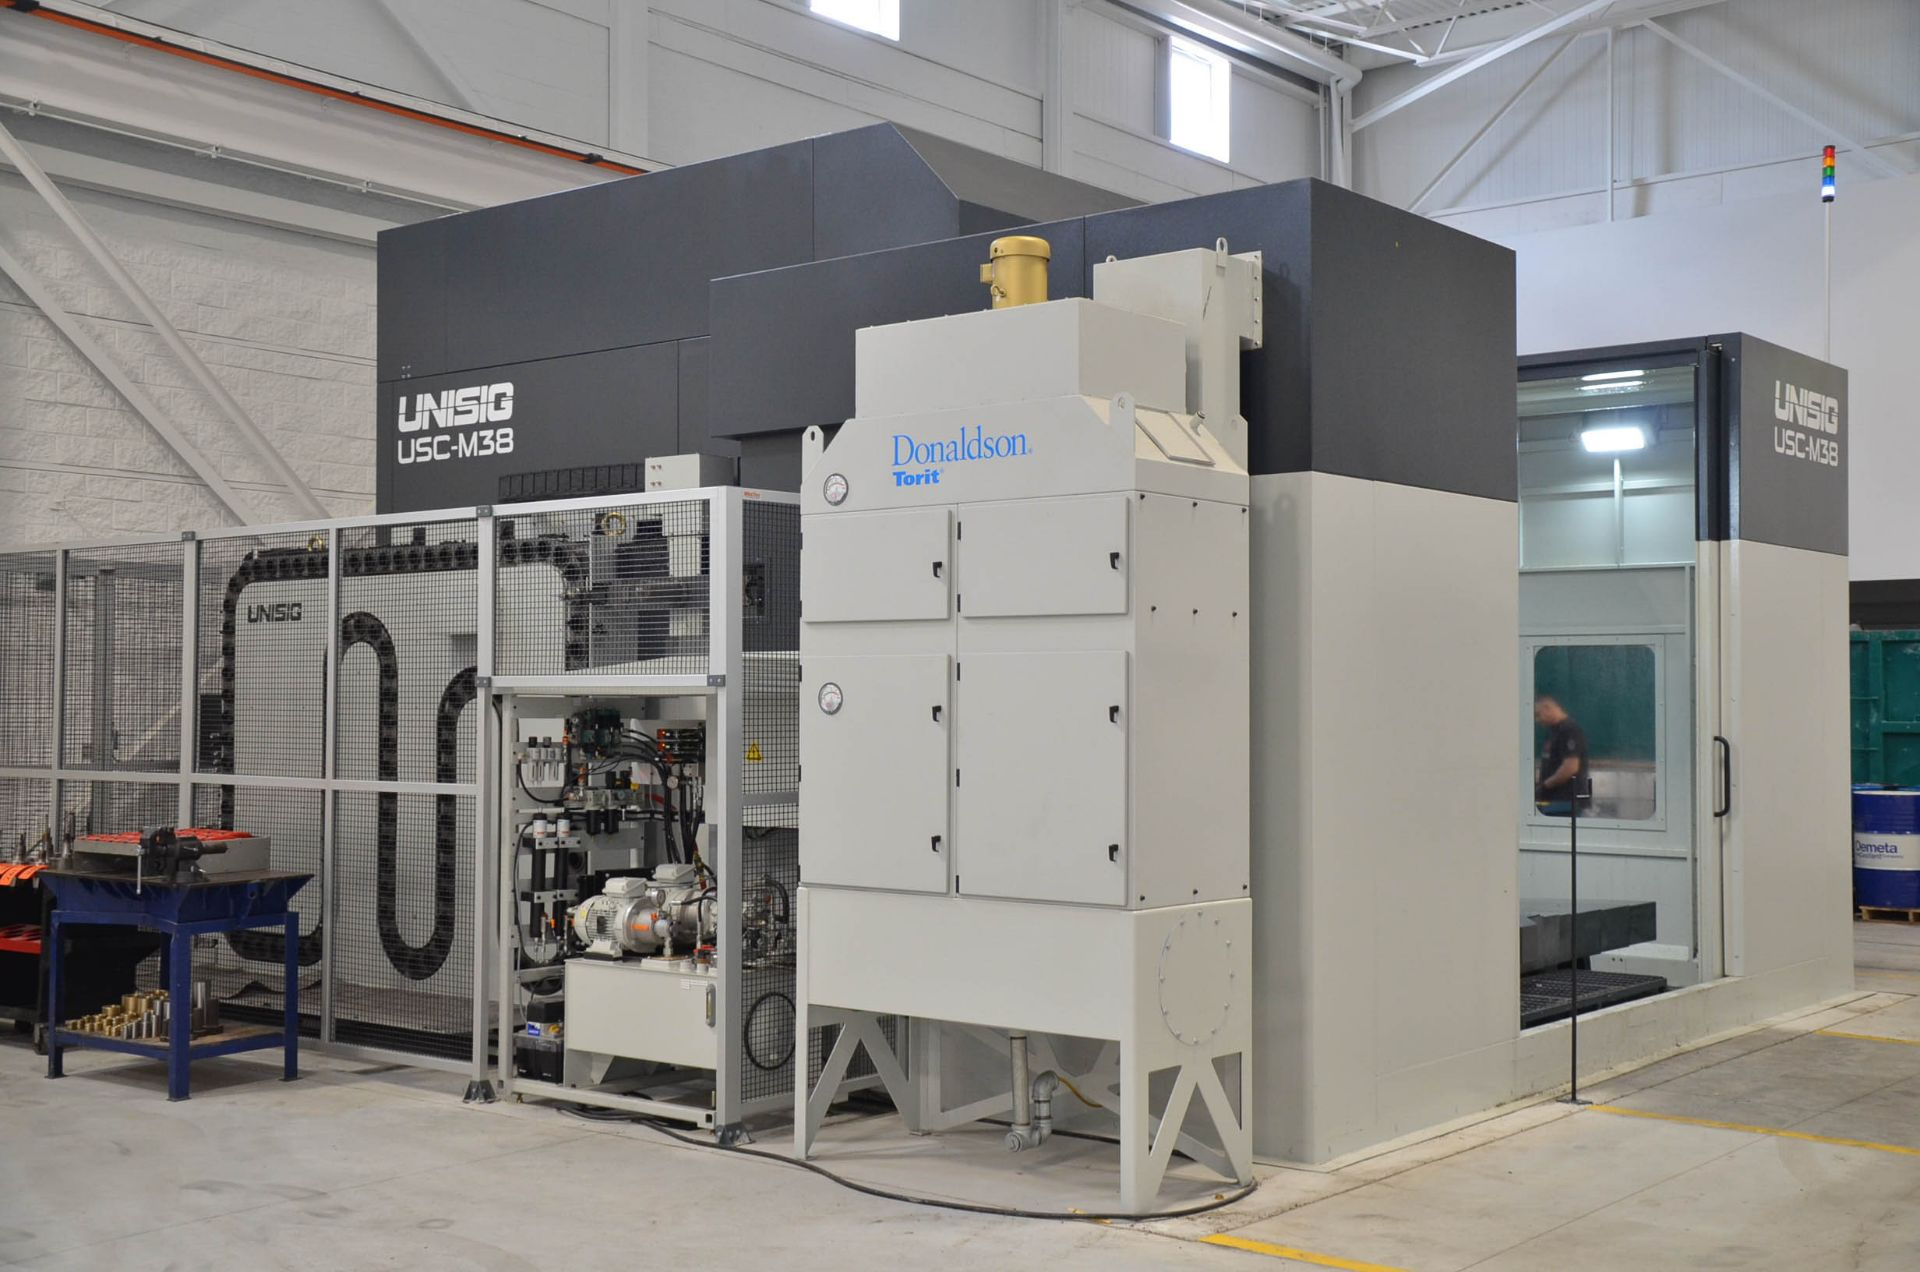 UNISIG (2020) USC-M38 5-AXIS COMBINATION CNC GUN DRILLING AND MILLING MACHINE WITH HEIDENHAIN ITNC - Image 11 of 17